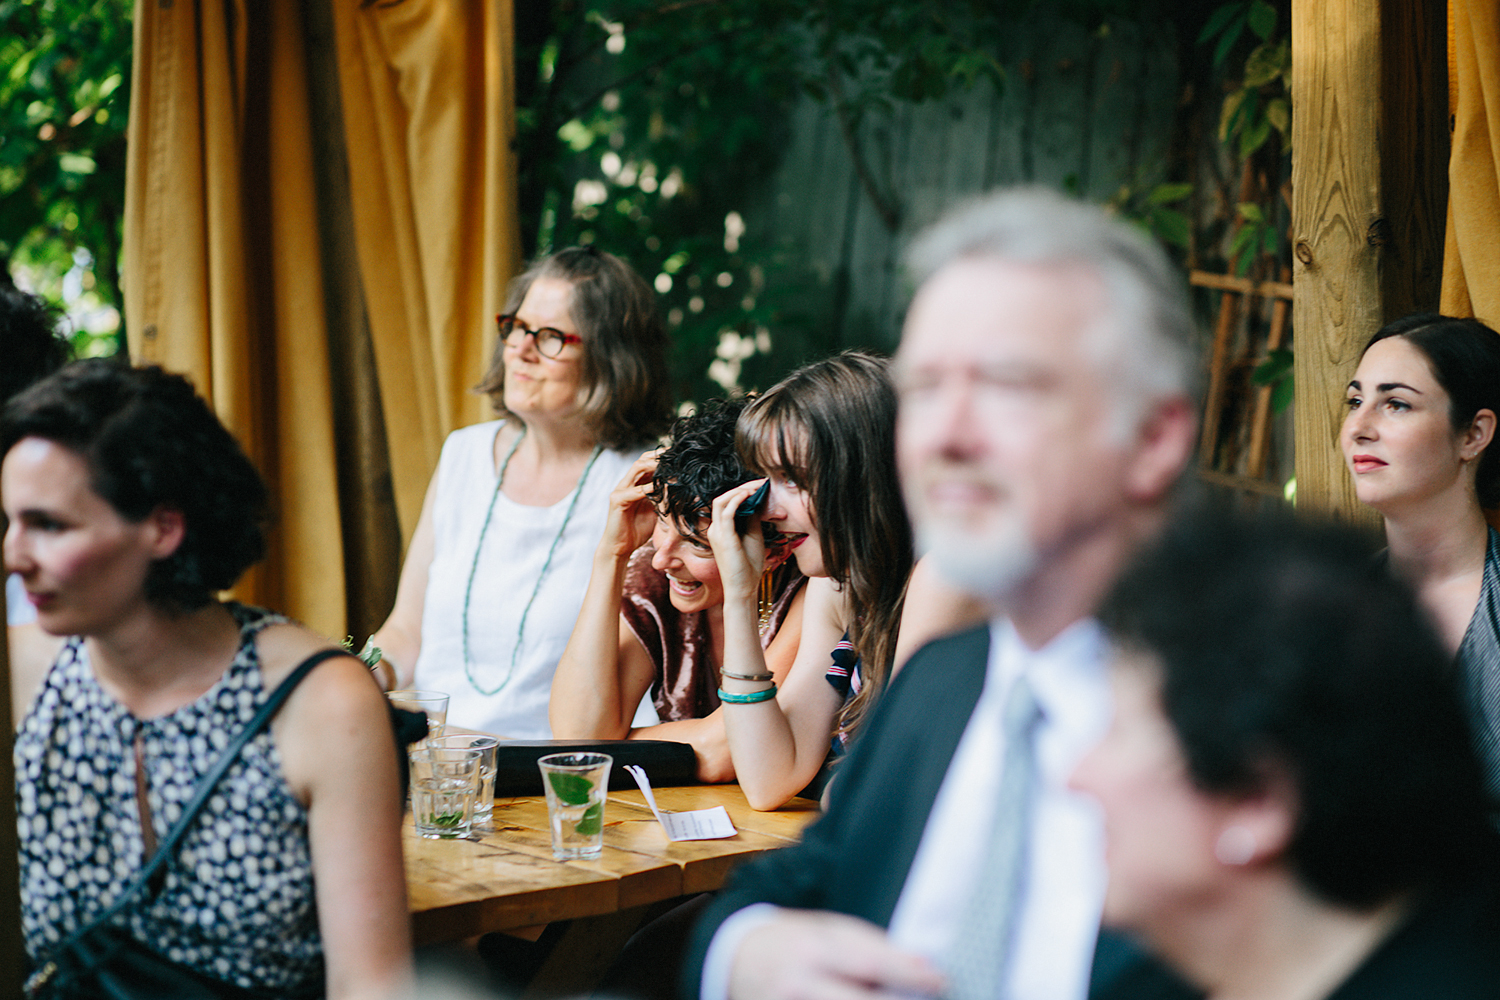 urban-downtown-toronto-wedding-fat-pasha-torontos-best-wedding-photographer-3b-photography-film-photographer-analog-photography-ceremony-on-outdoor-patio-jewish-ceremony-guests-crying-emotional-tears-sweet.jpg